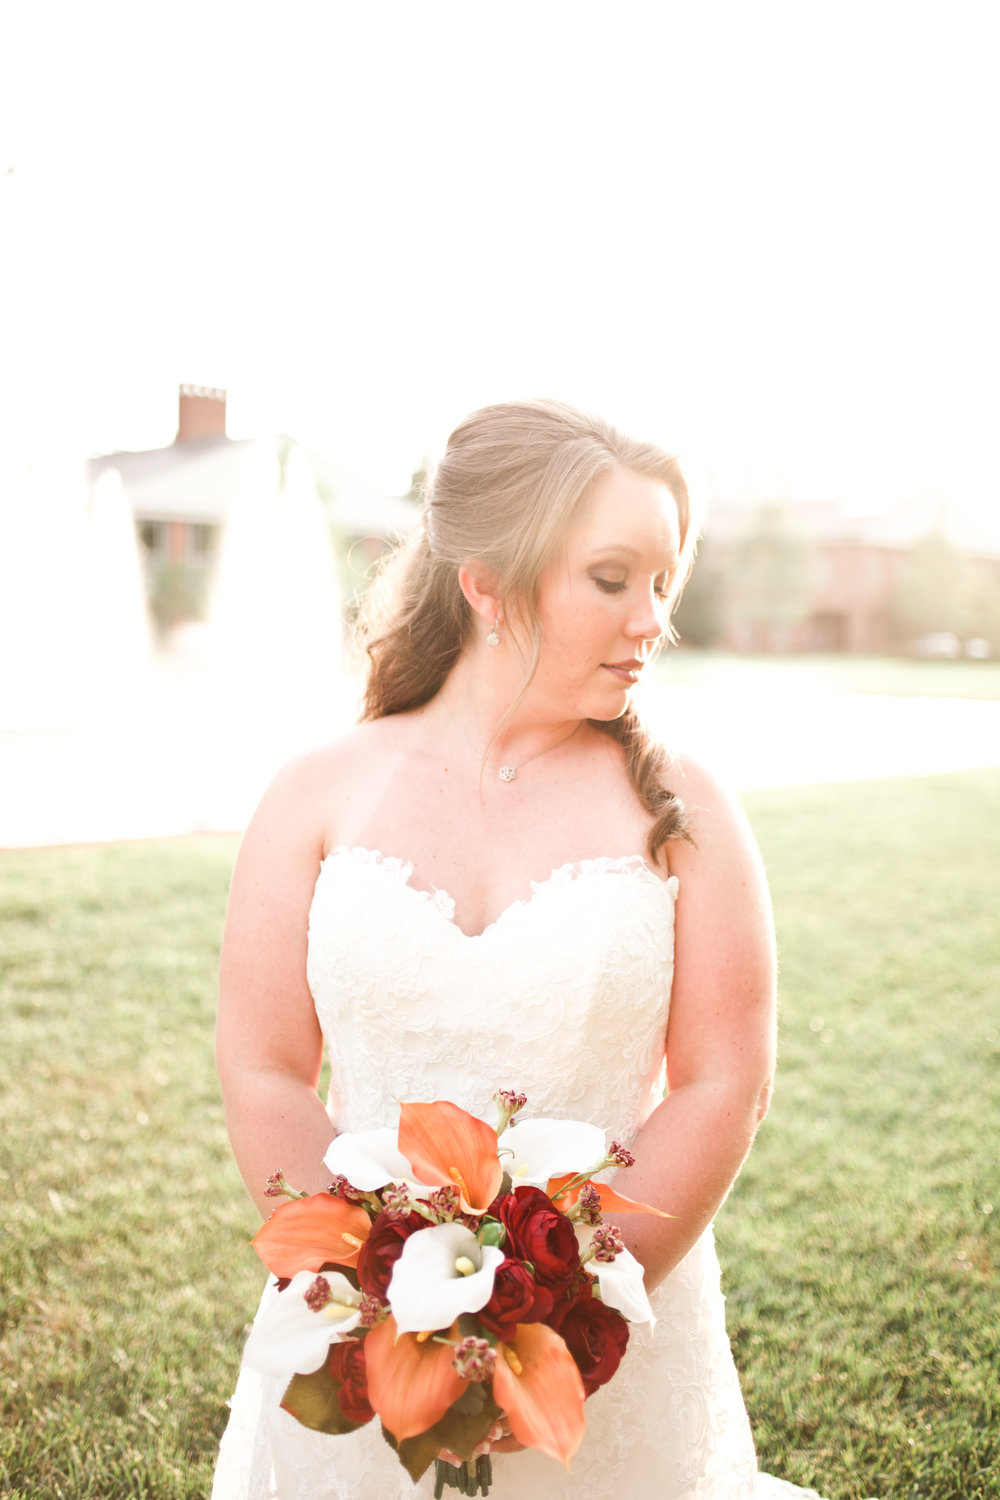 gabbie_bridal_poured_out_photography-66.jpg